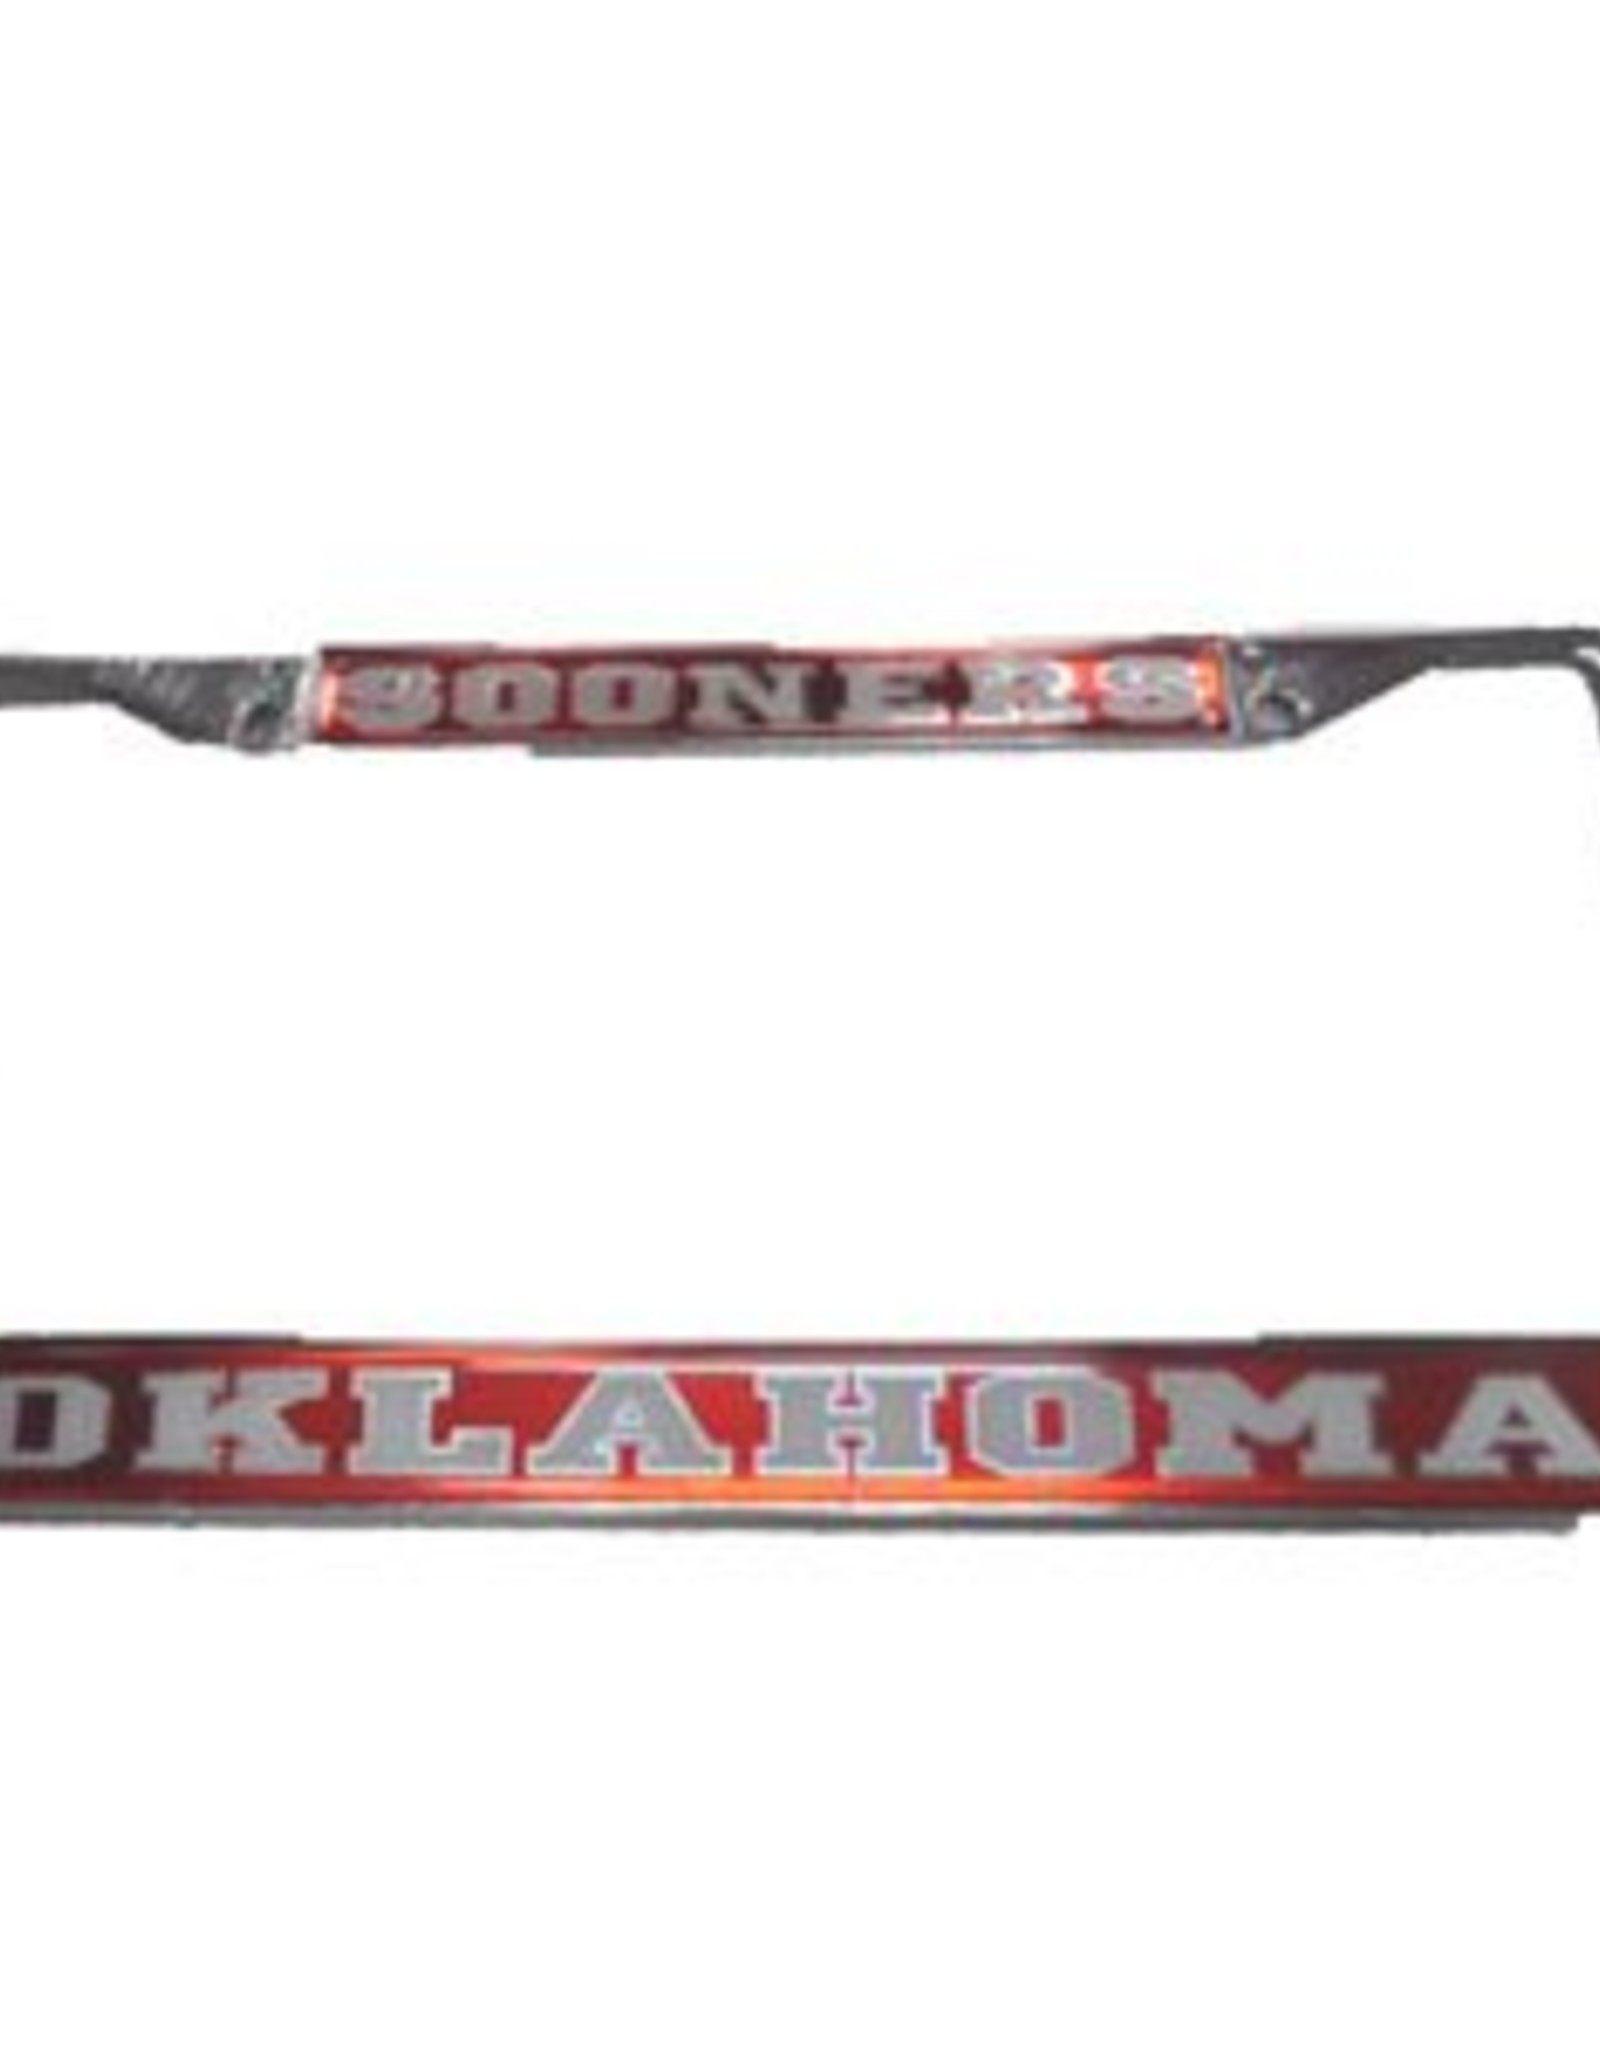 Craftique Craftique Sooners/Oklahoma White/Crimson License Frame